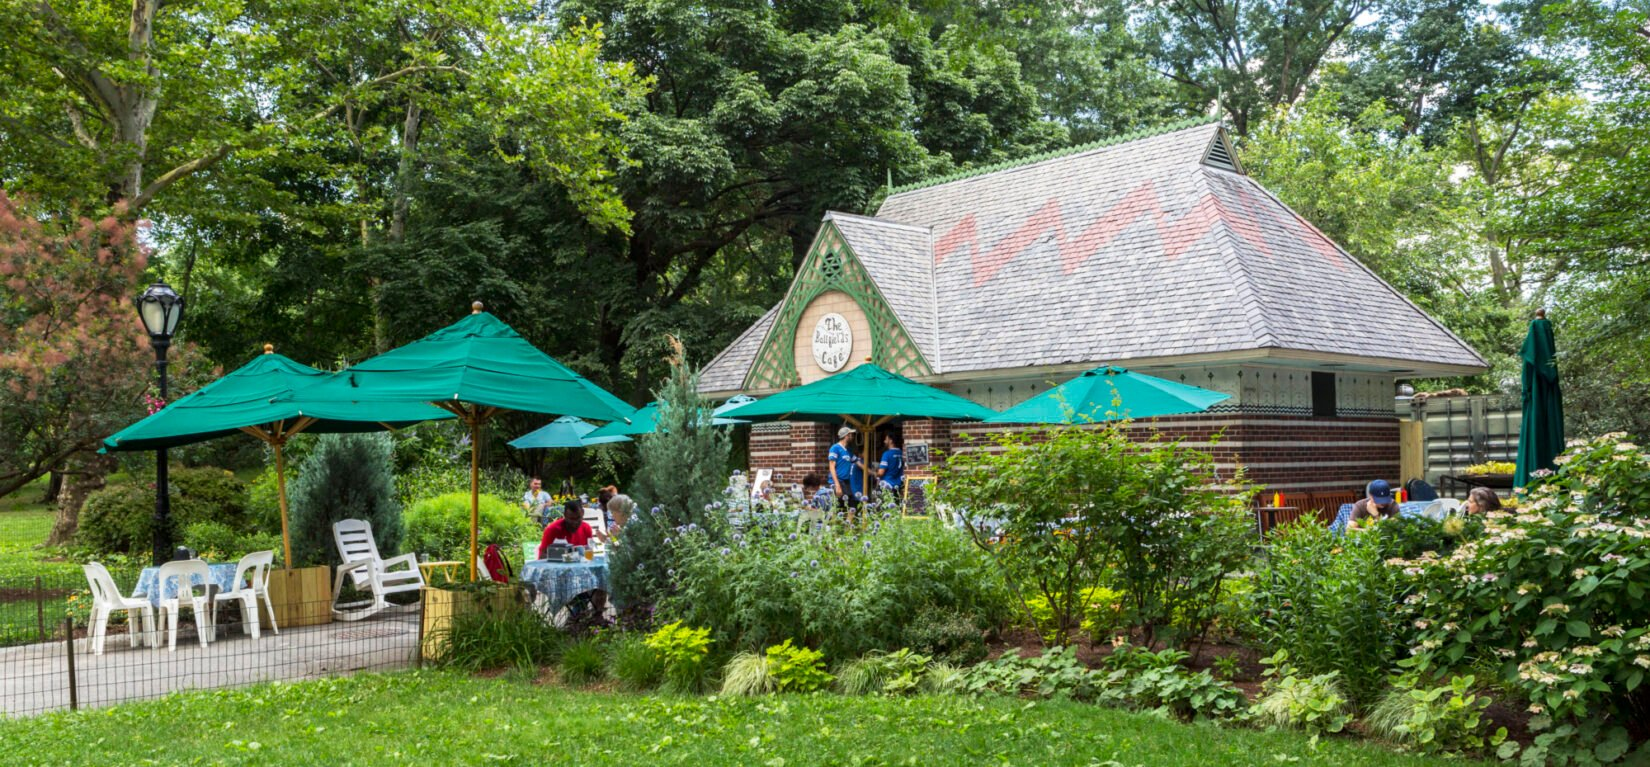 People enjoying cafe fare under green umbrellas in the outdoor dining area of the cafe